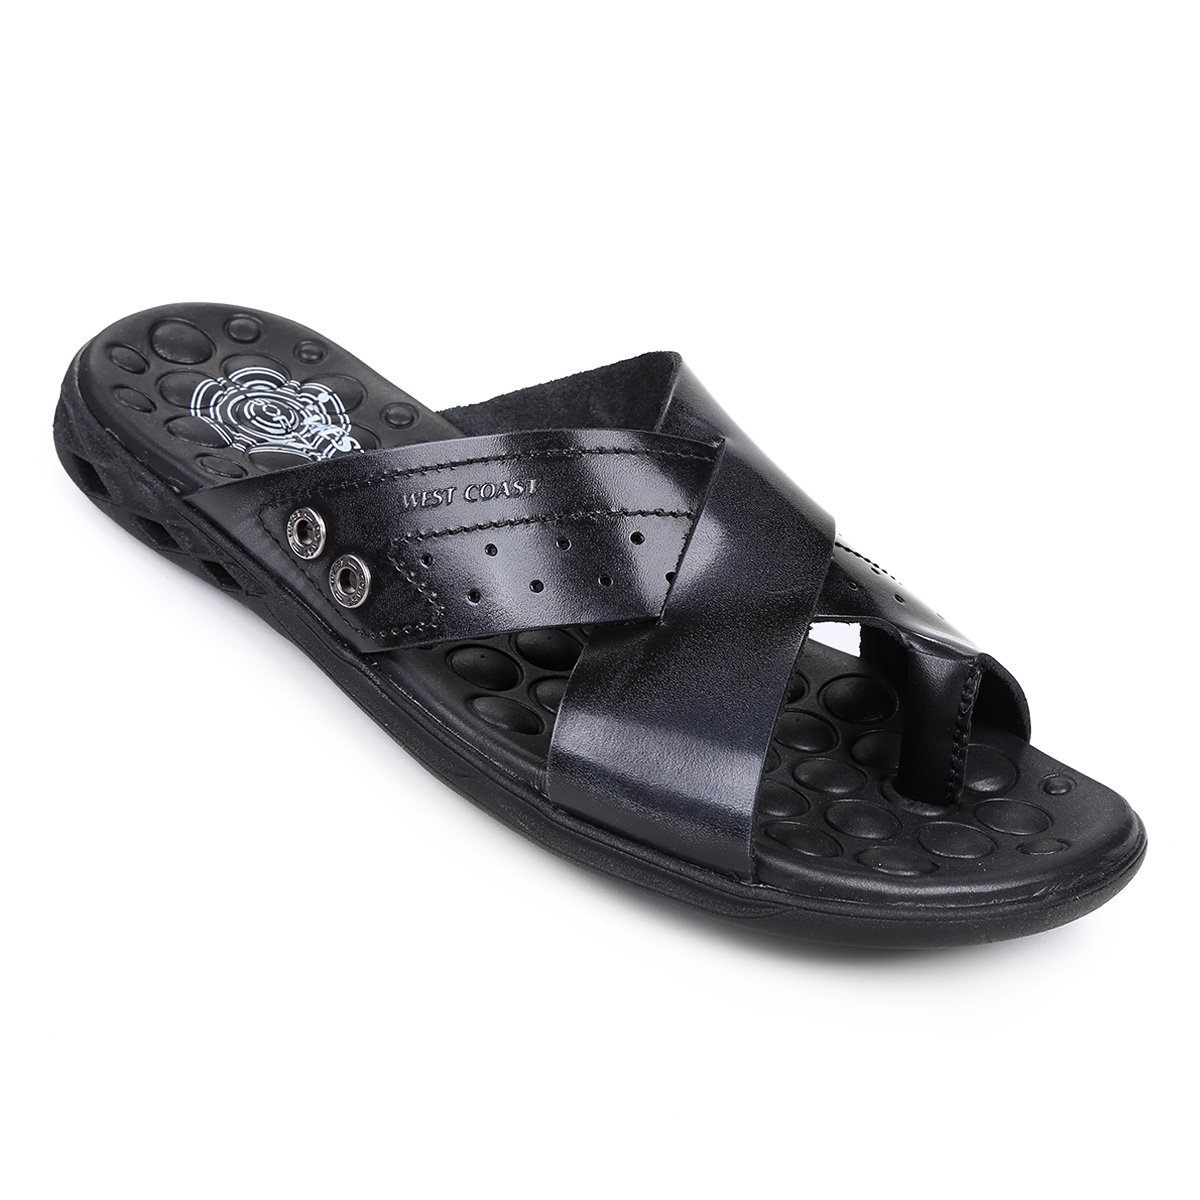 West Chinelo Preto Chinelo Preto Coast Block Masculino Couro Masculino West Block Coast Couro Chinelo UwBdpAxqA1